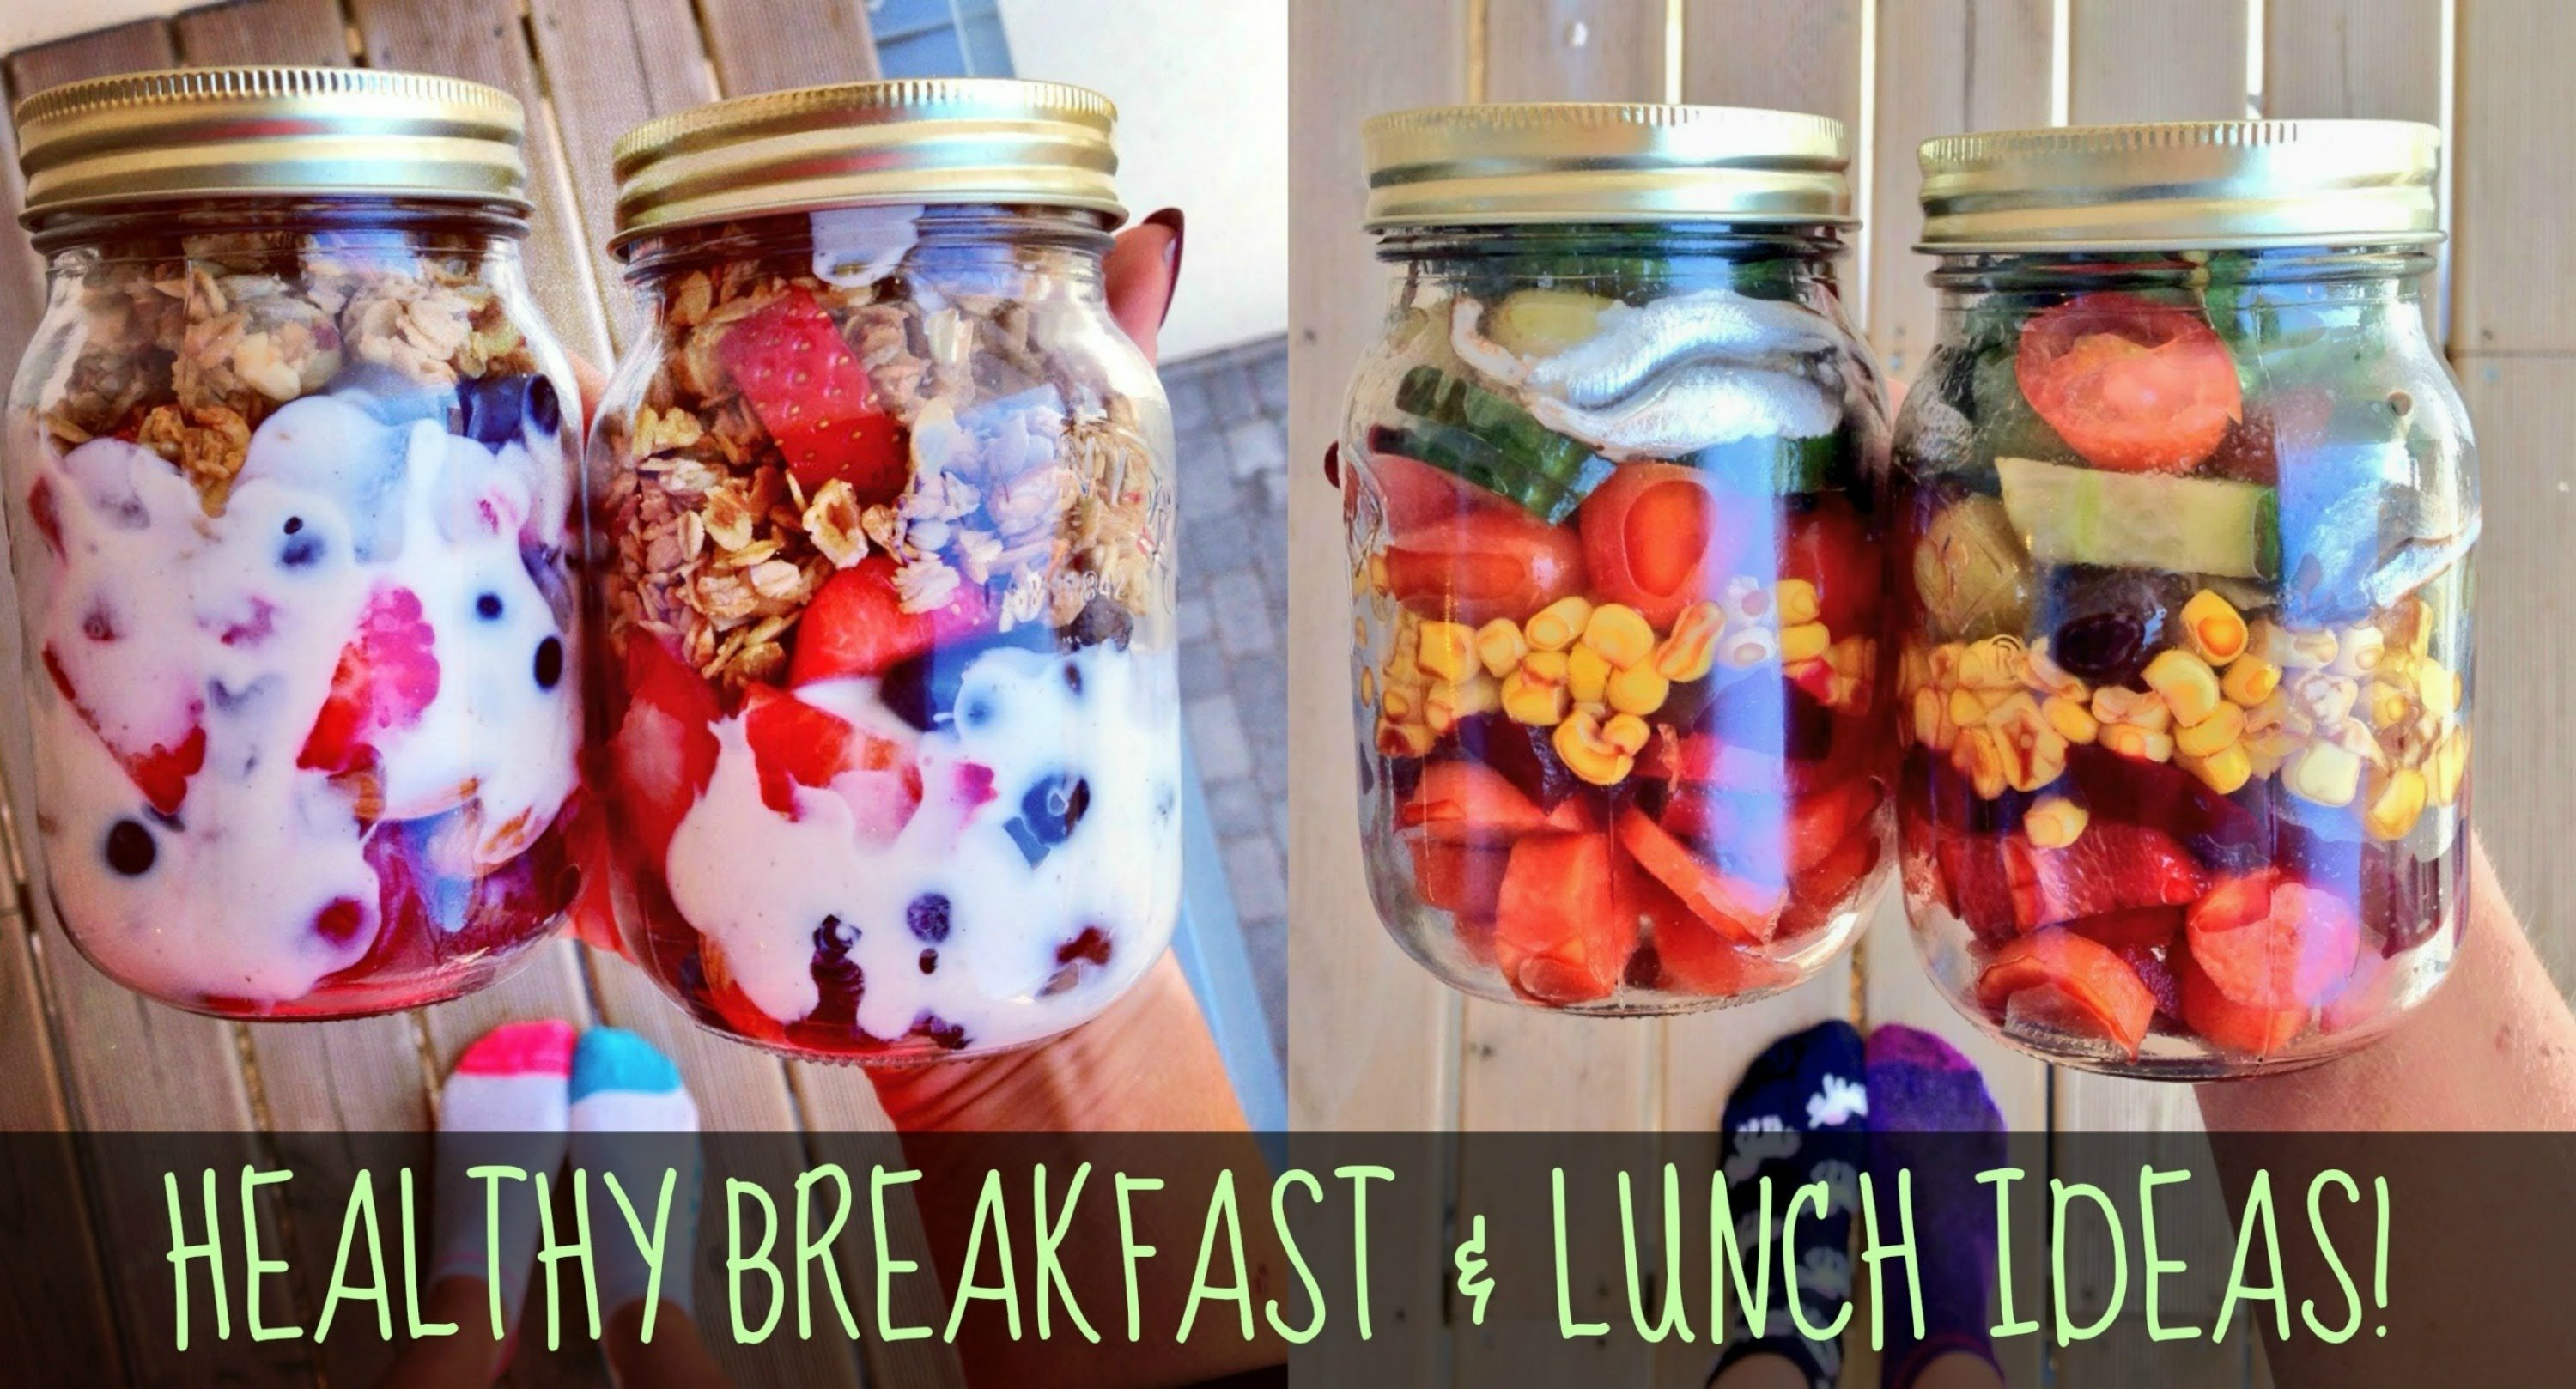 10 Perfect Light Lunch Ideas For Work healthy breakfast and lunch ideas for school work youtube 3 2021